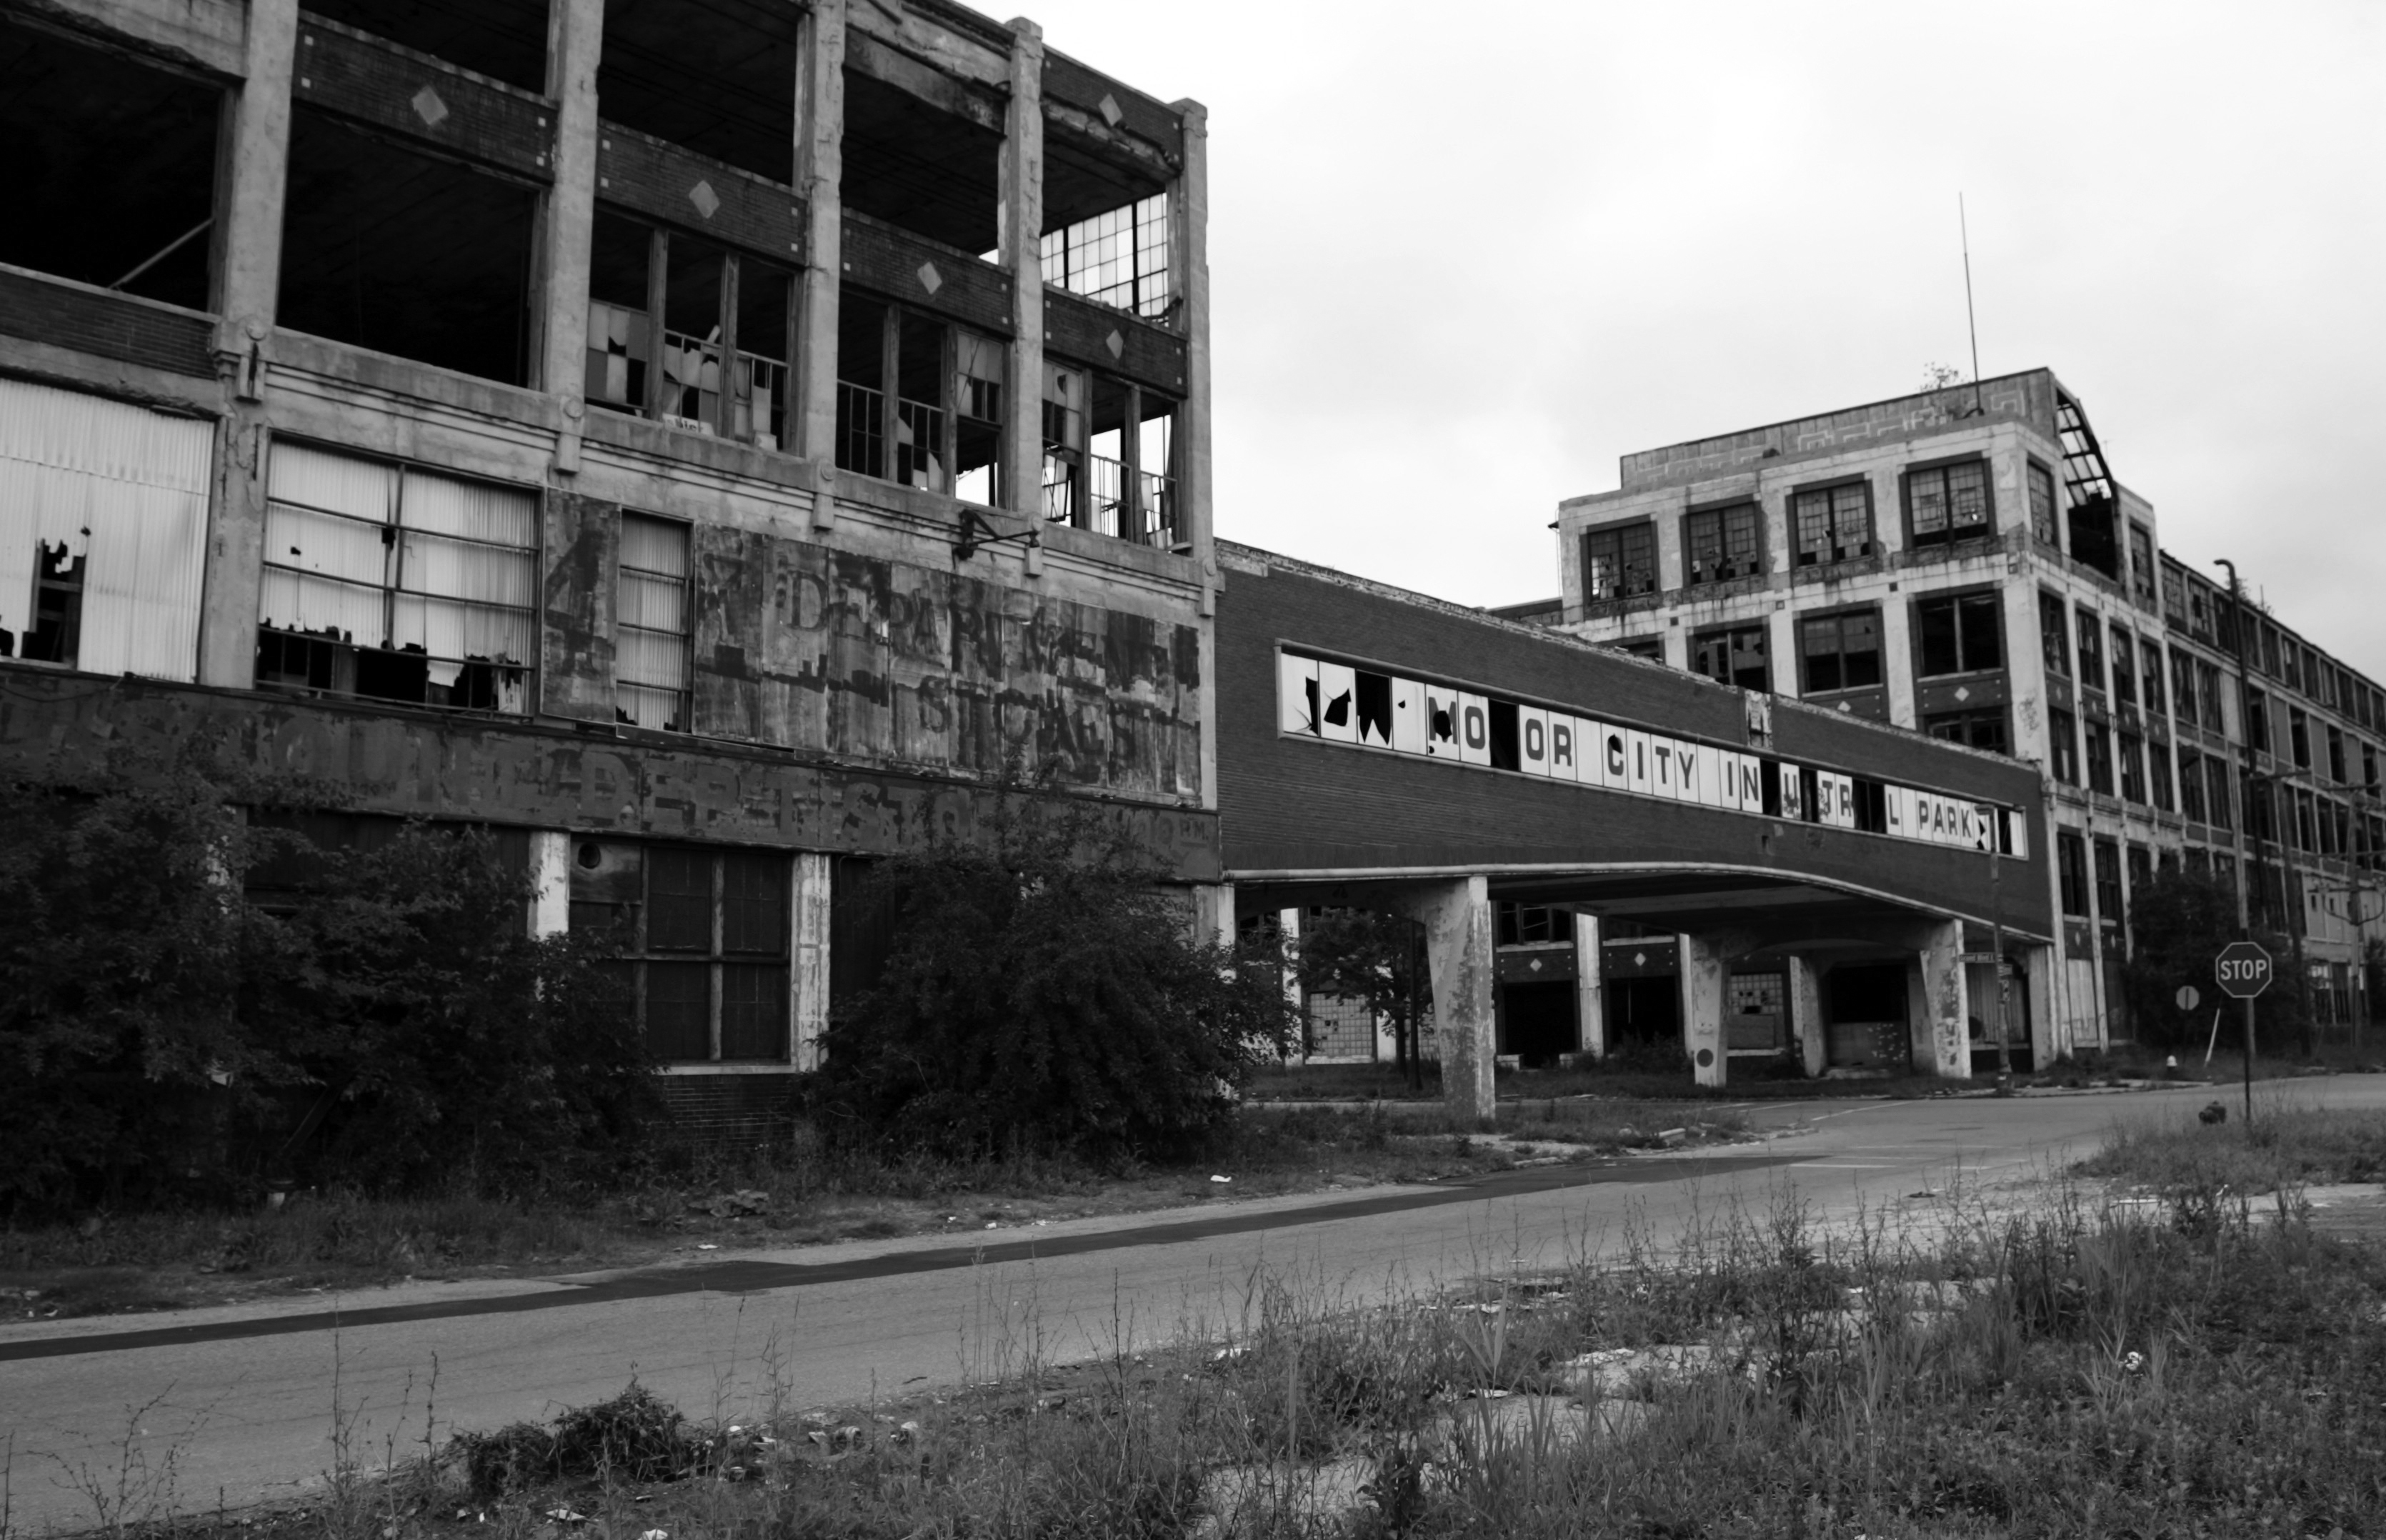 April fools pdx on verge of collapse after homeless for Rose city motors michigan